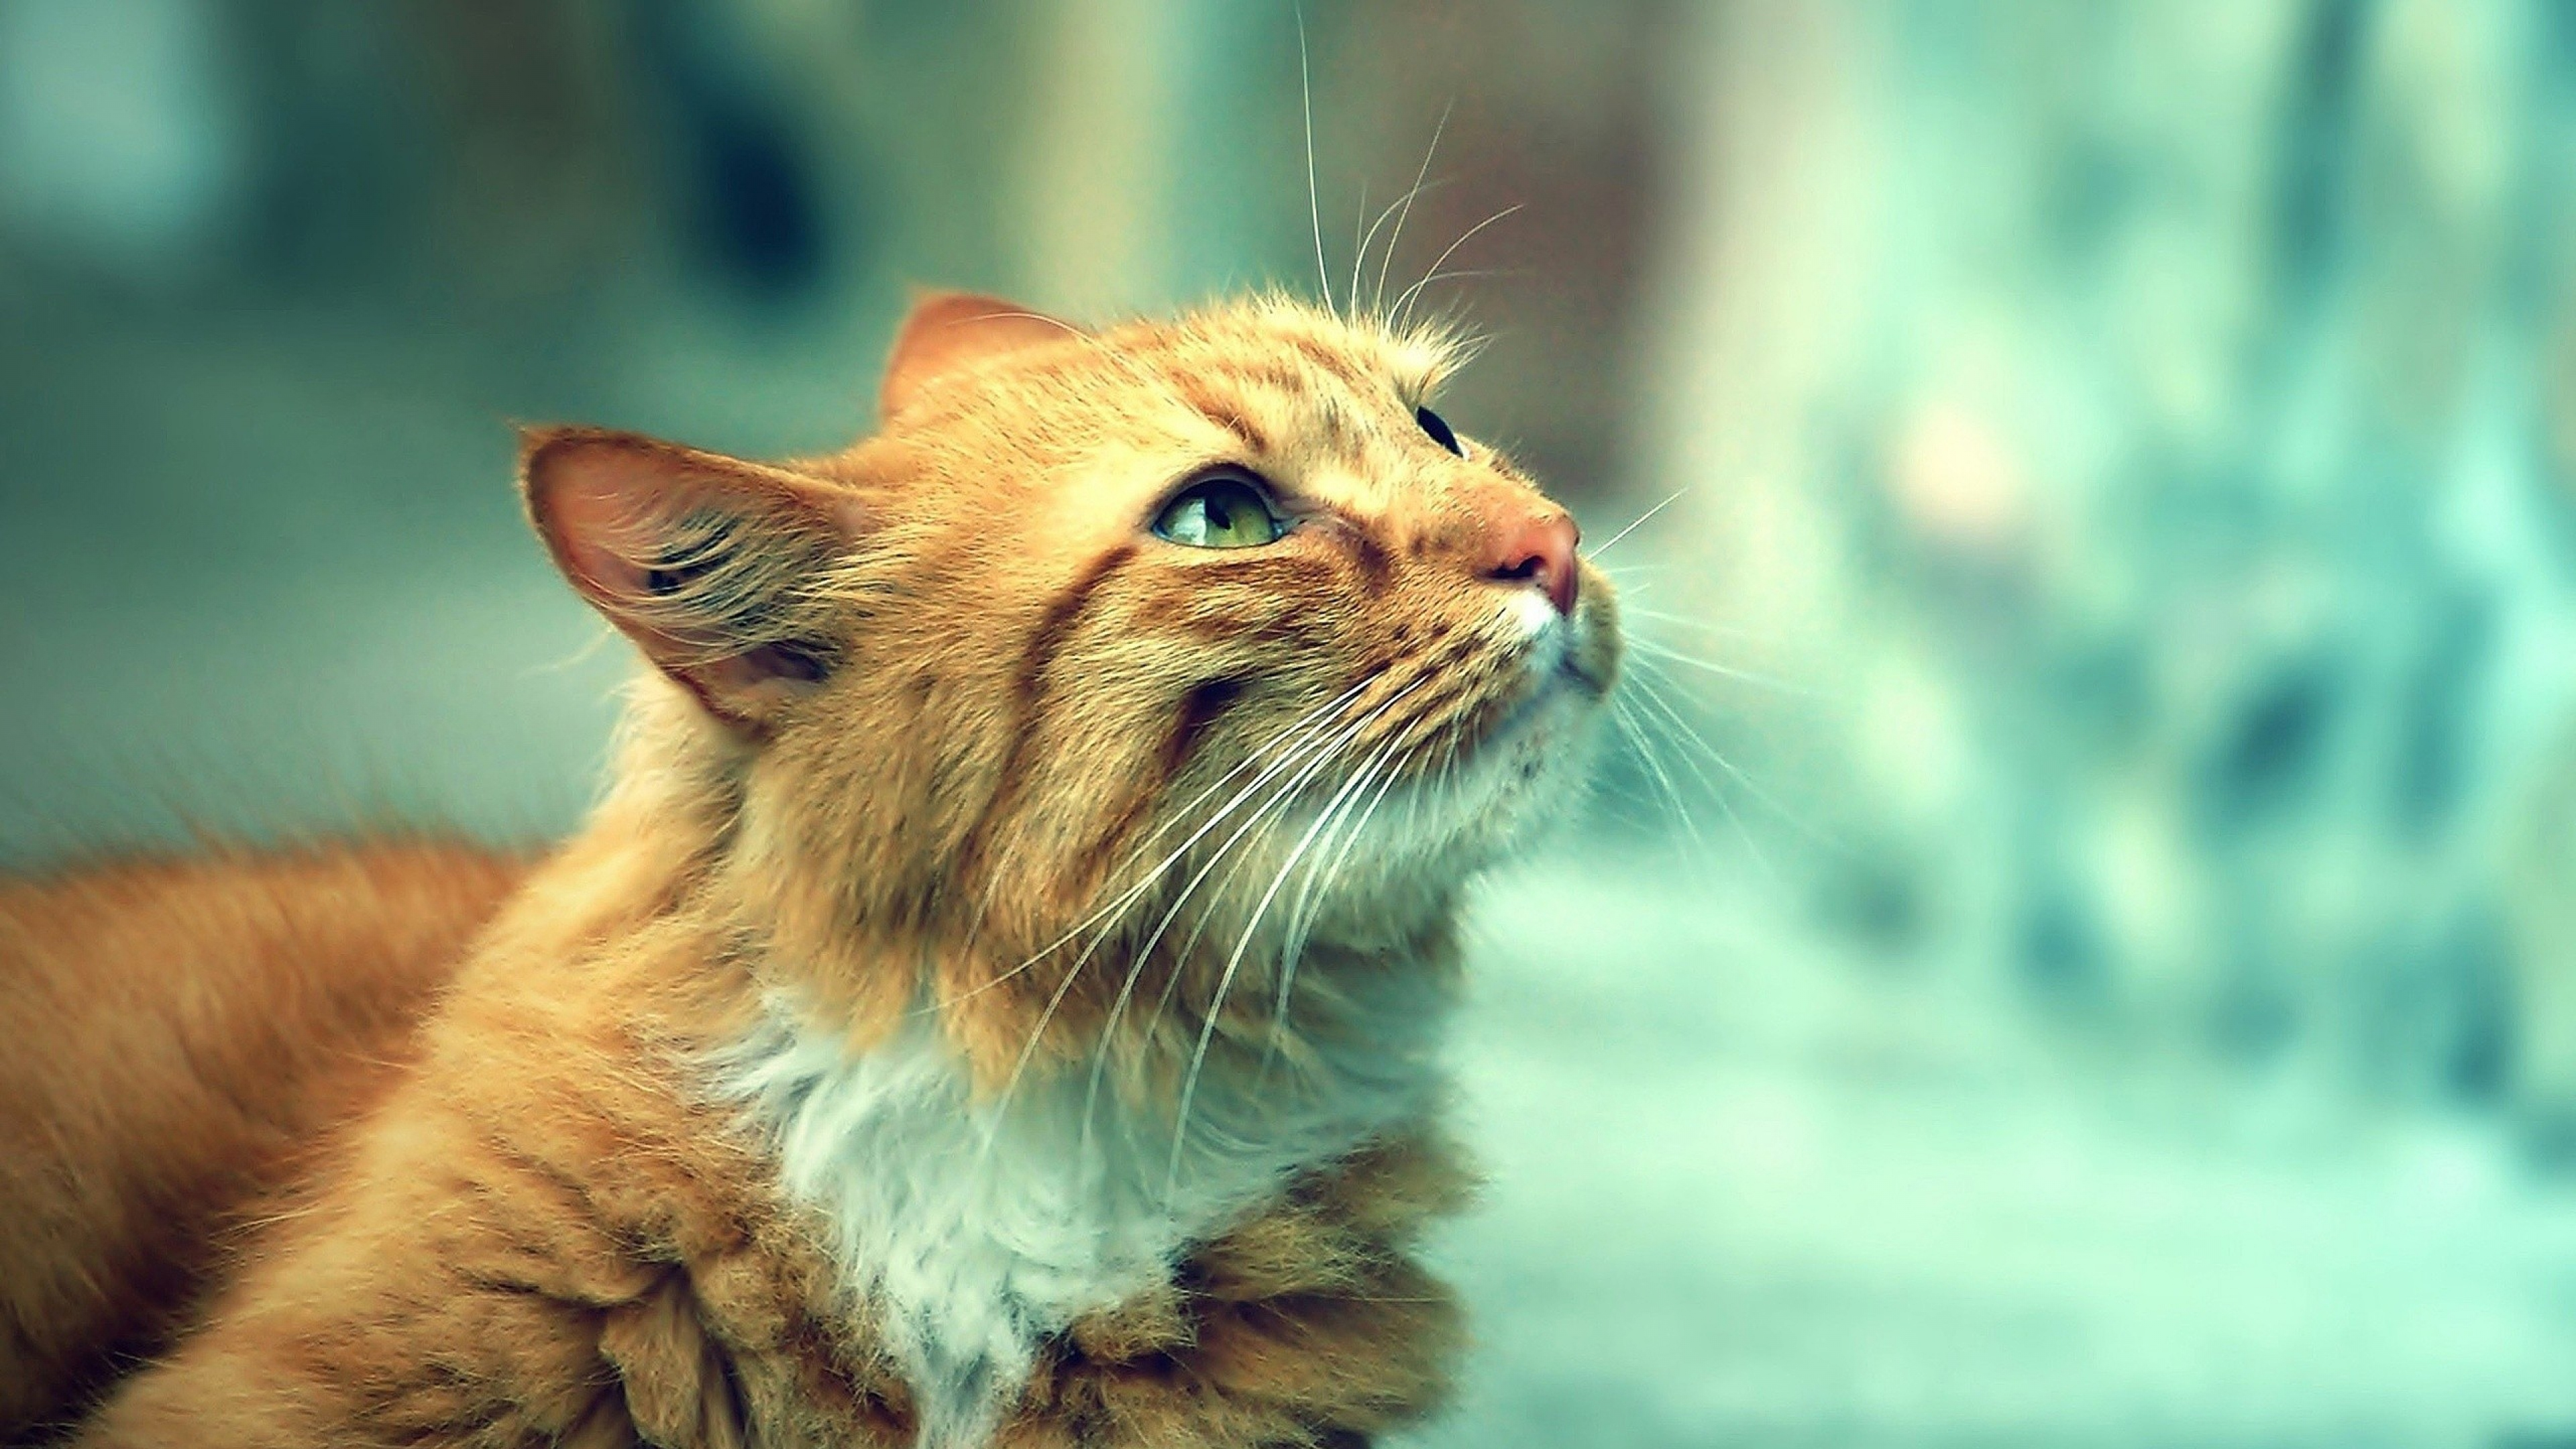 Cool Cats Wallpapers Online Ginger And White Cat With